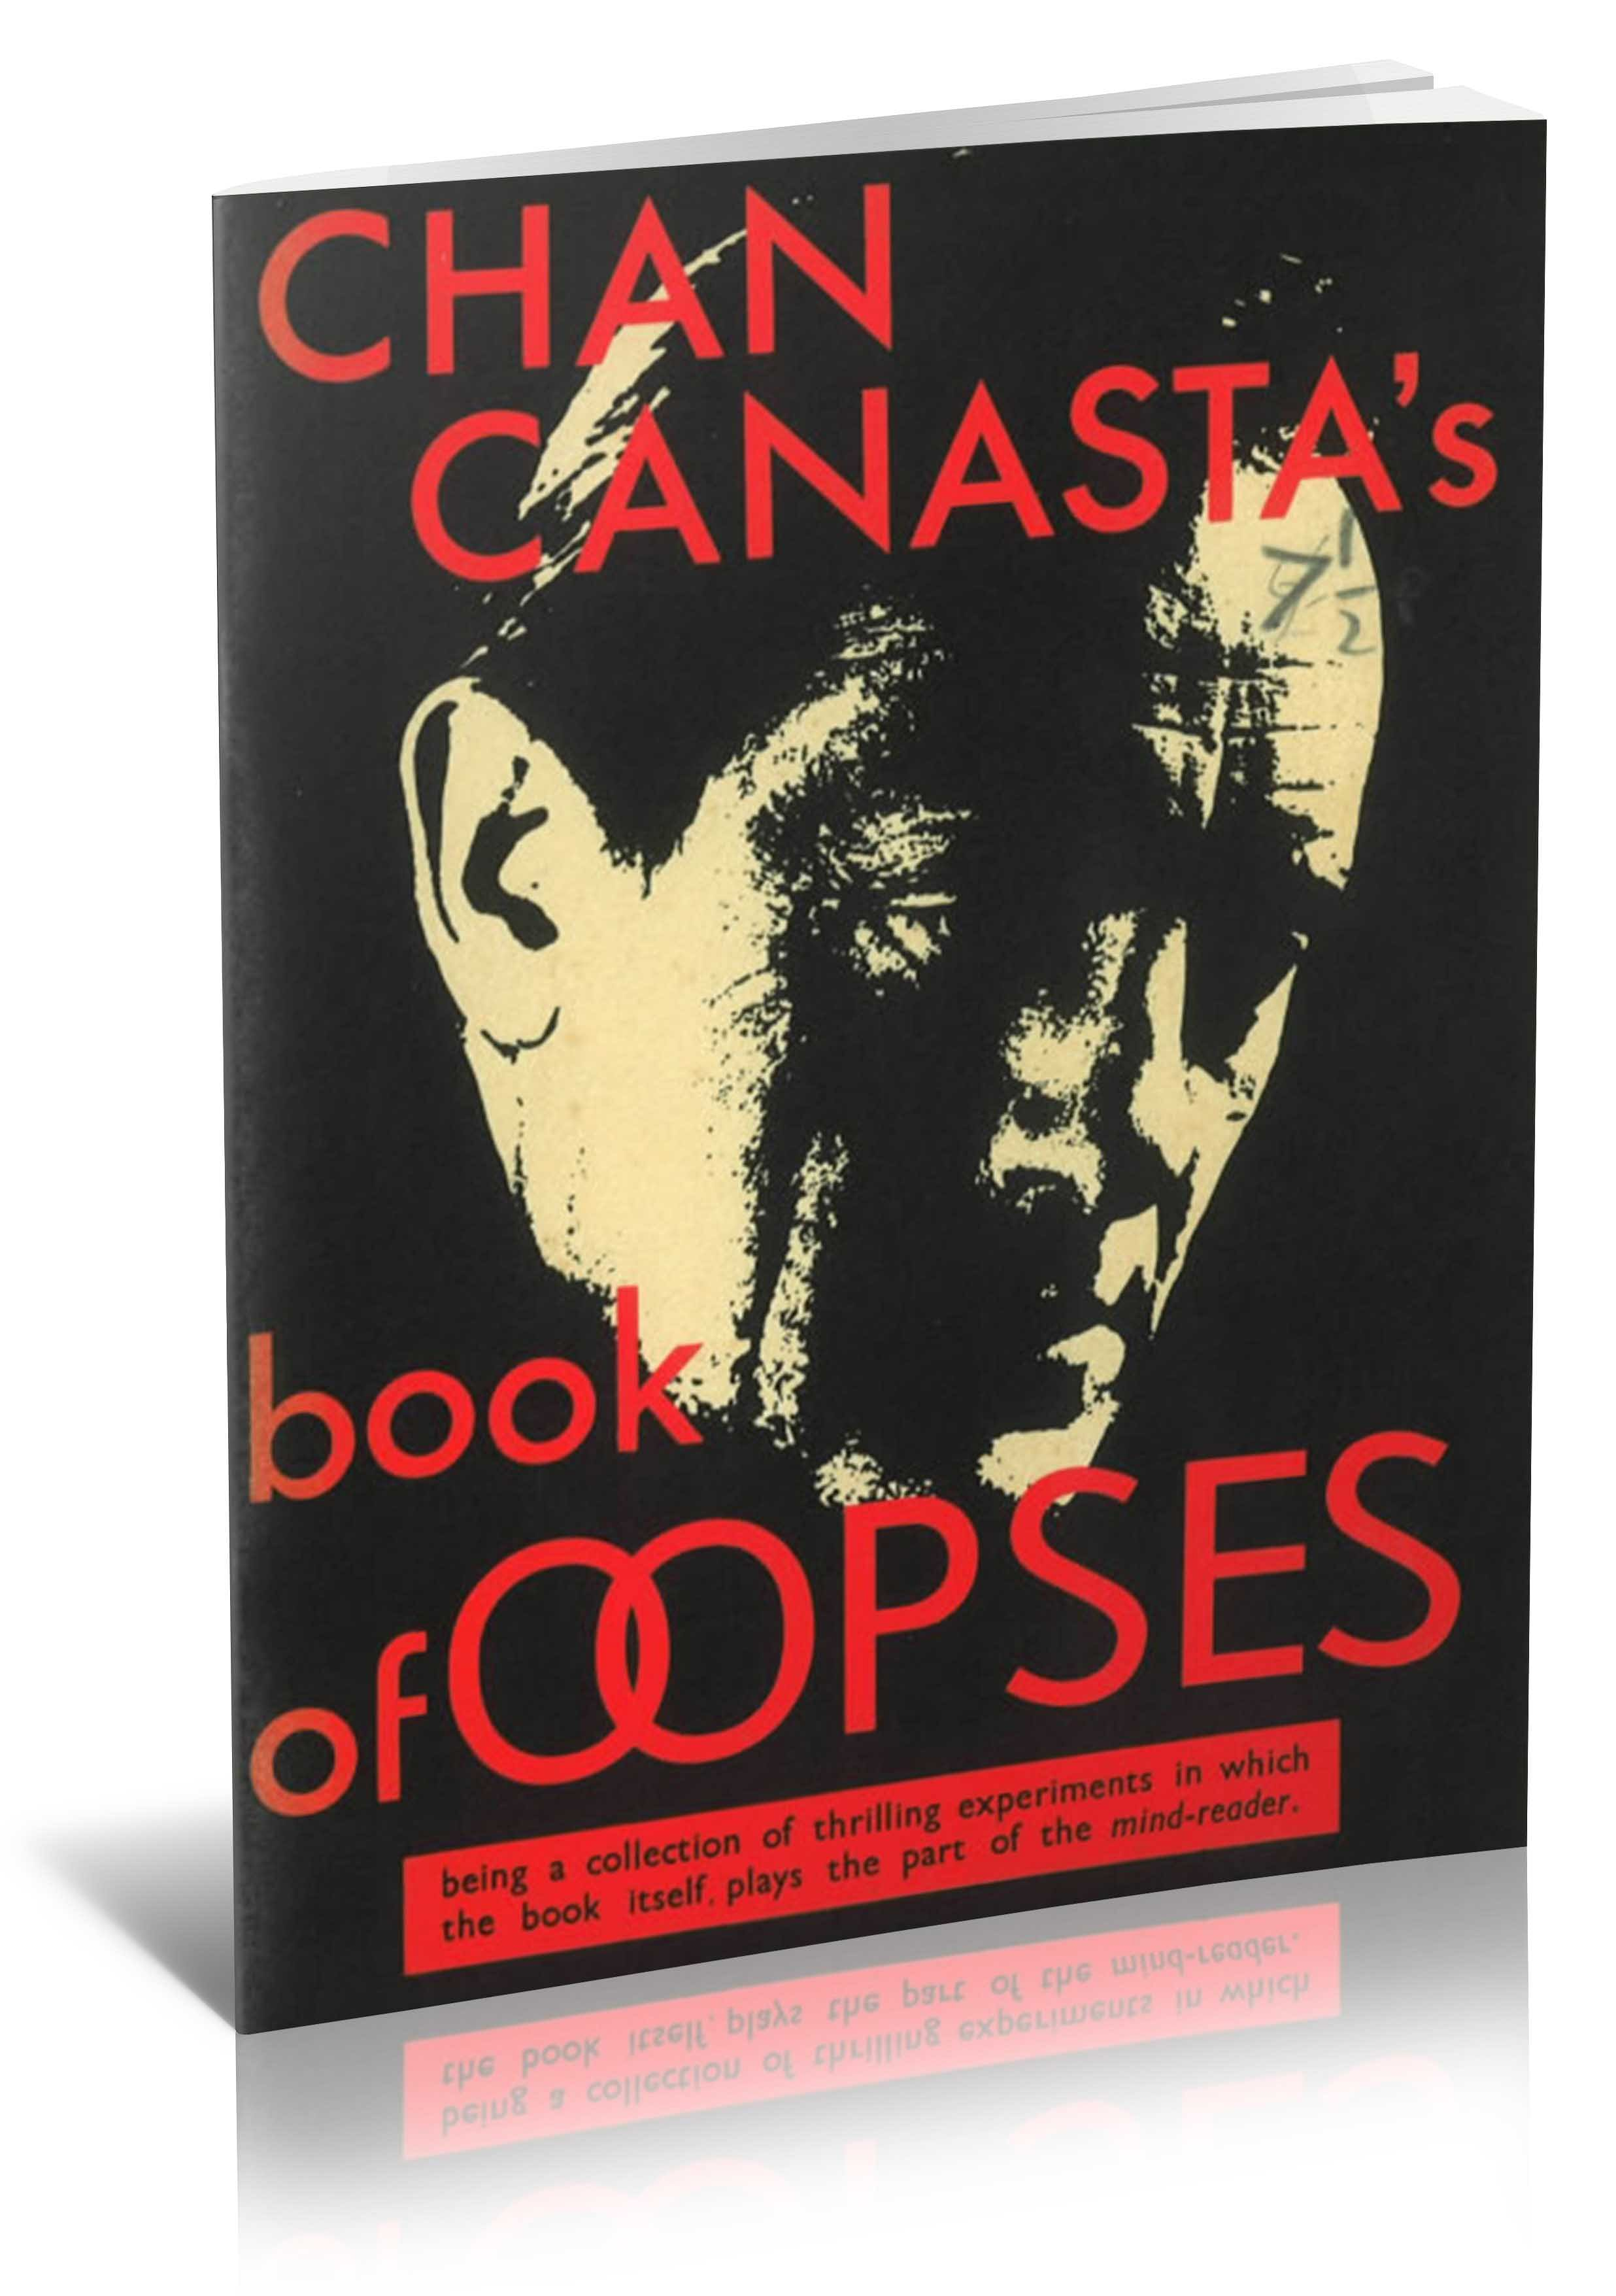 Chan Canasta's Book of Oopses  - magic